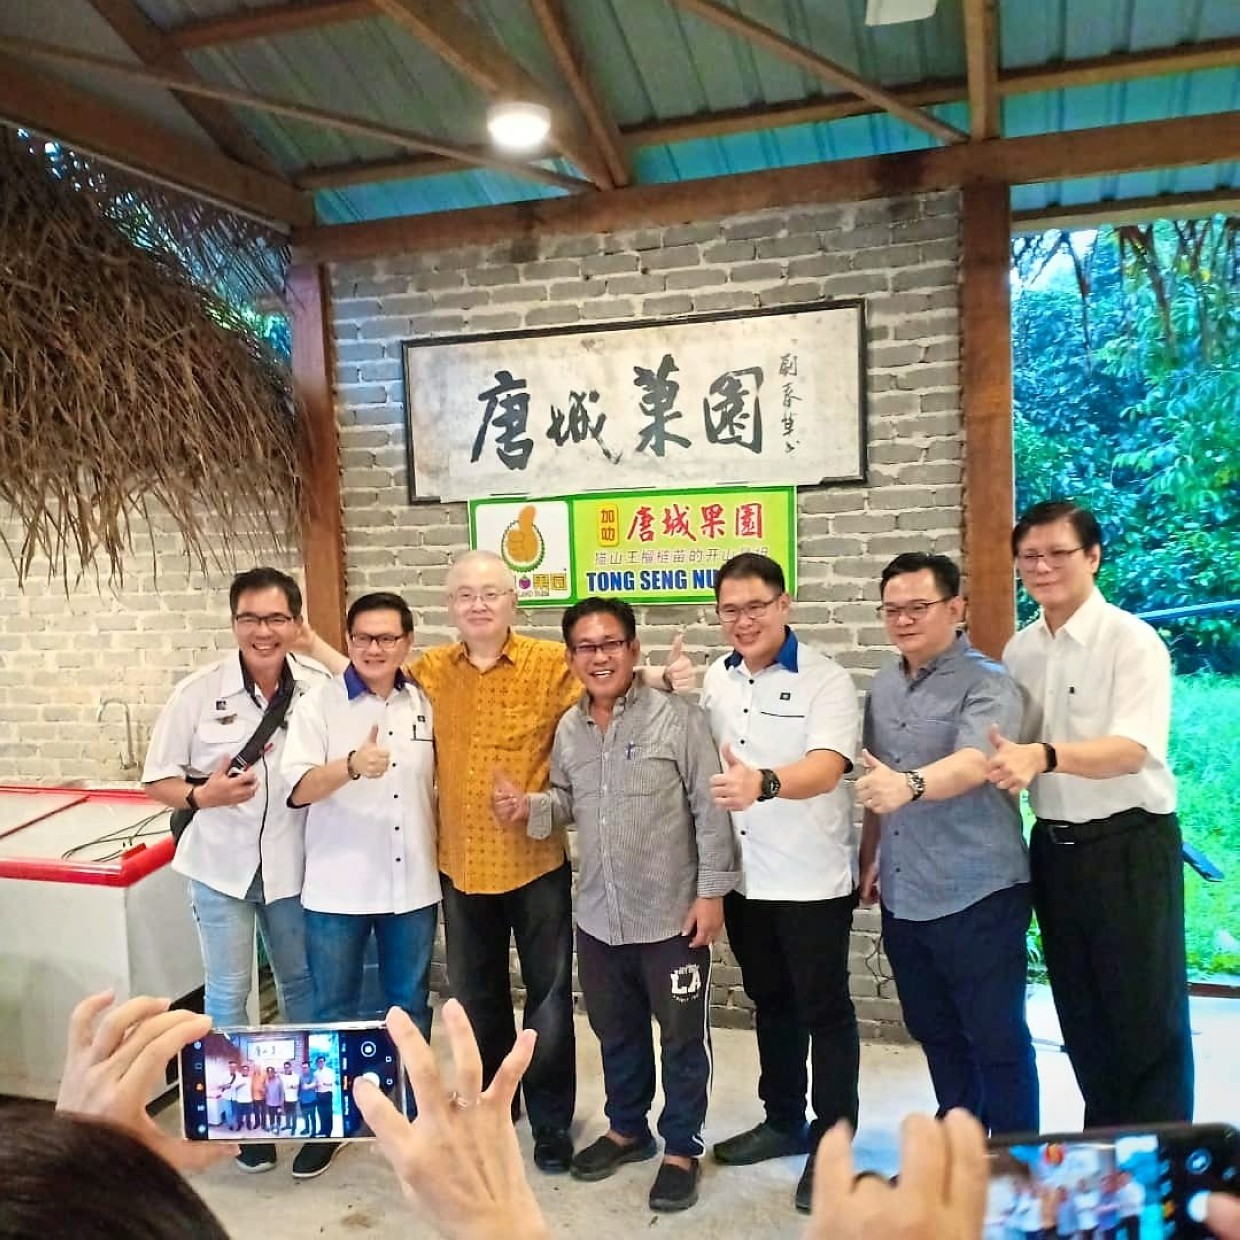 MCA president Datuk Seri Dr Wee Ka Siong (third from left) and other MCA leaders on a recent visit to Tong Seng Nursery in Karak. On Wee's left is Frankie.